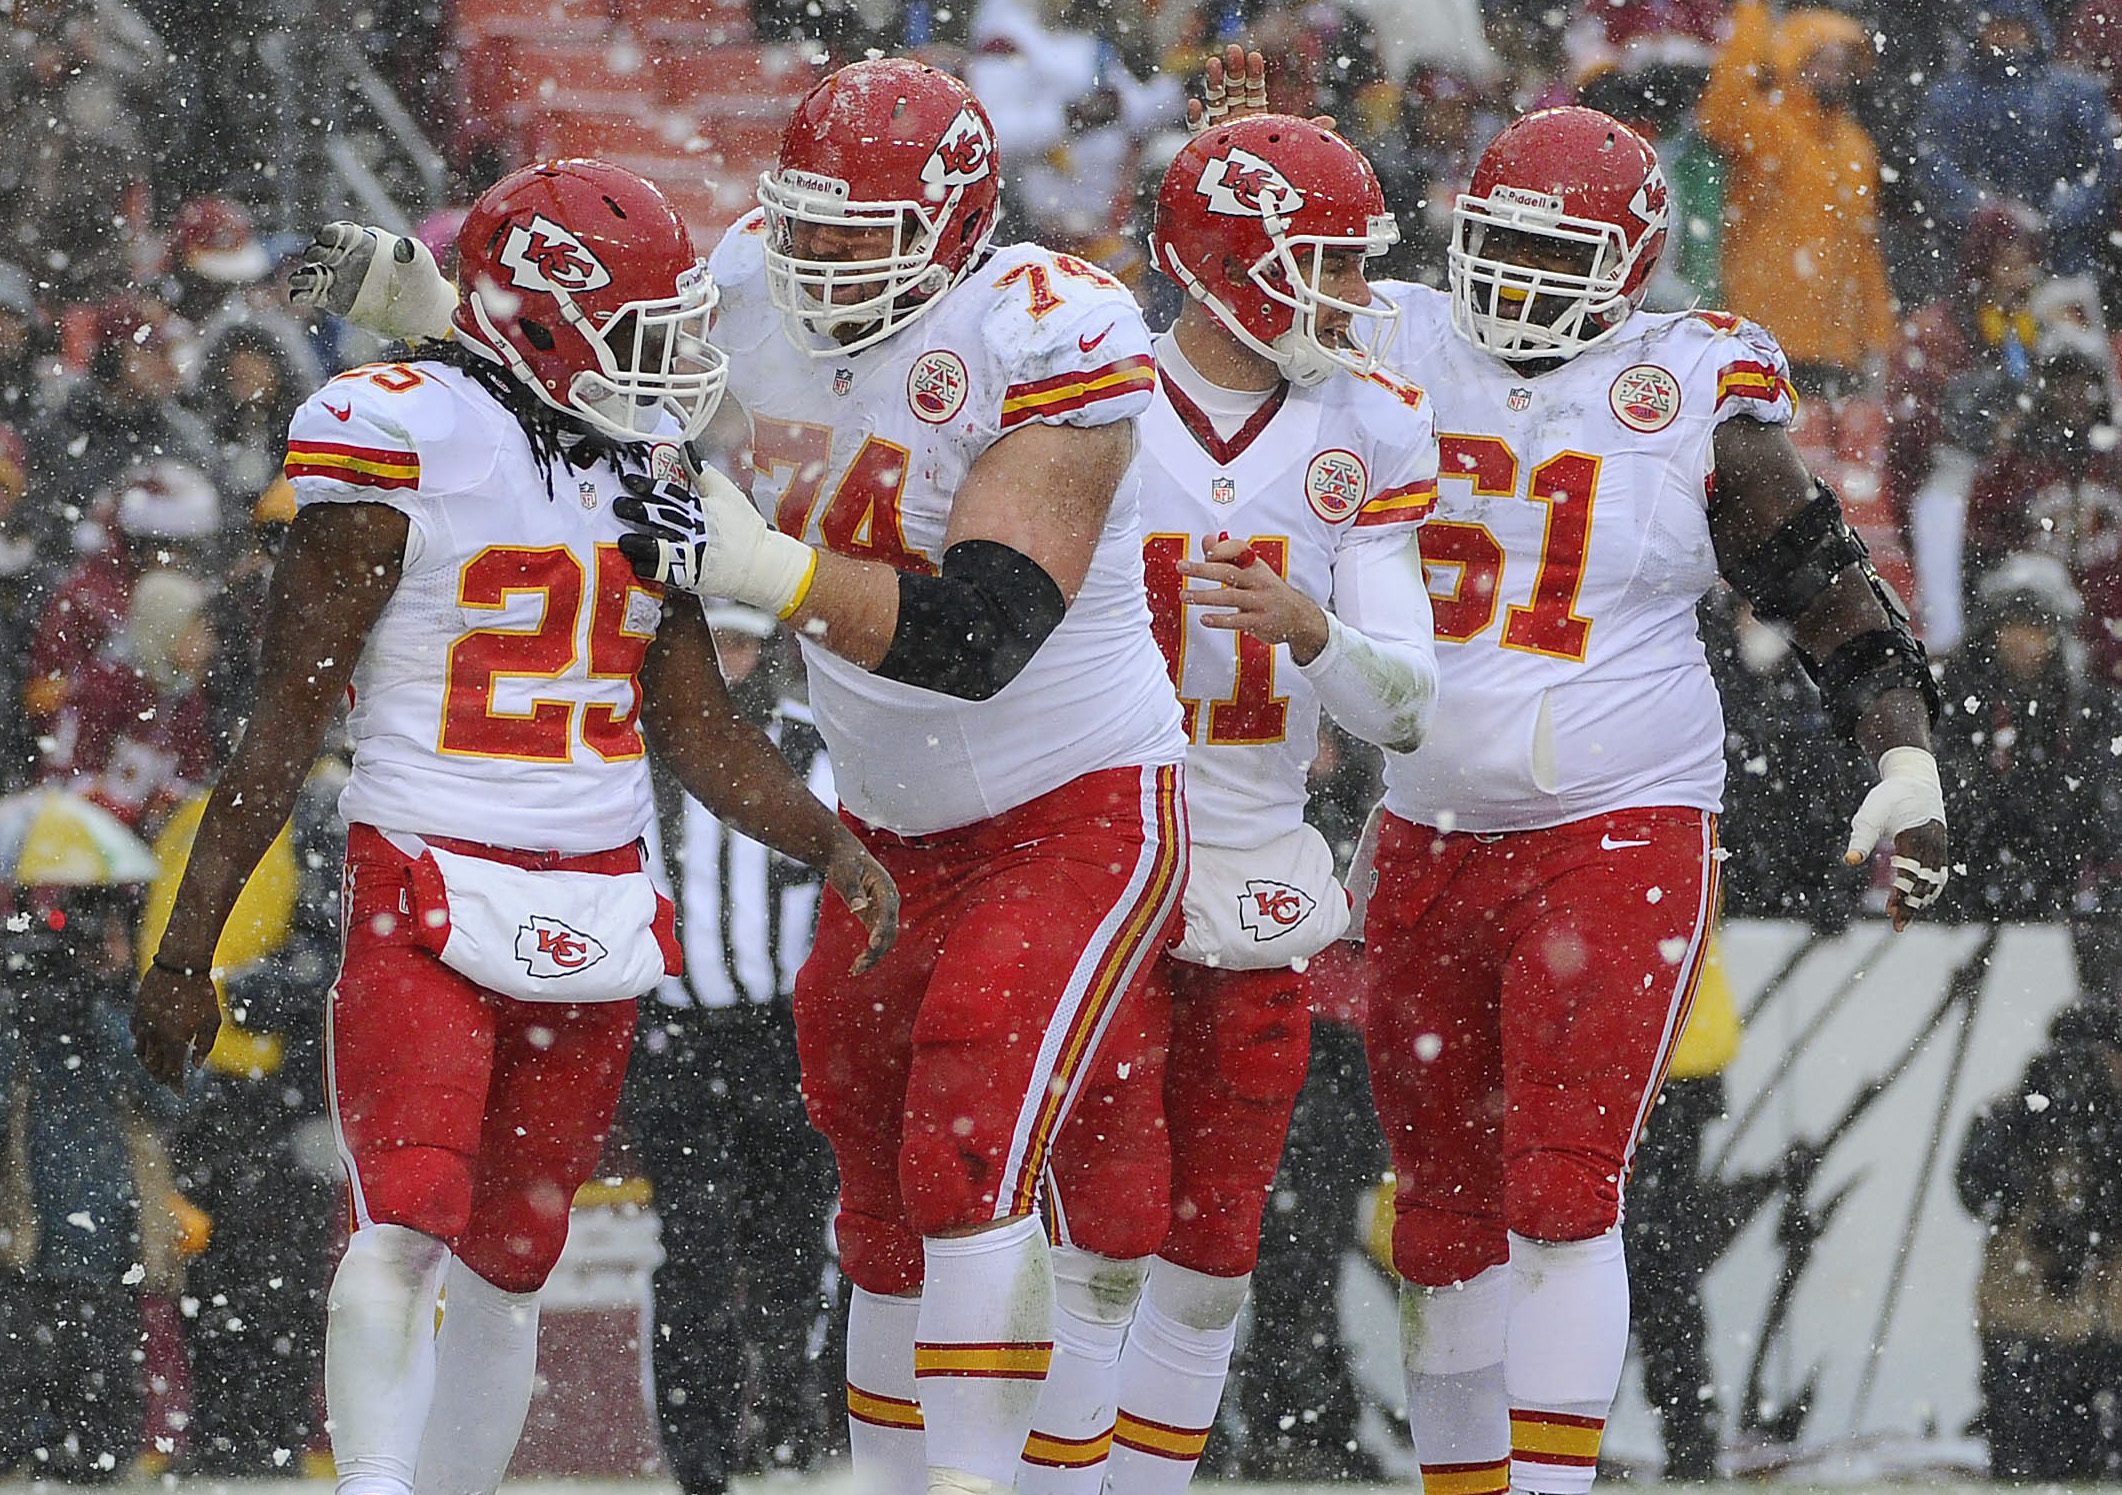 7606041-nfl-kansas-city-chiefs-at-washington-redskins